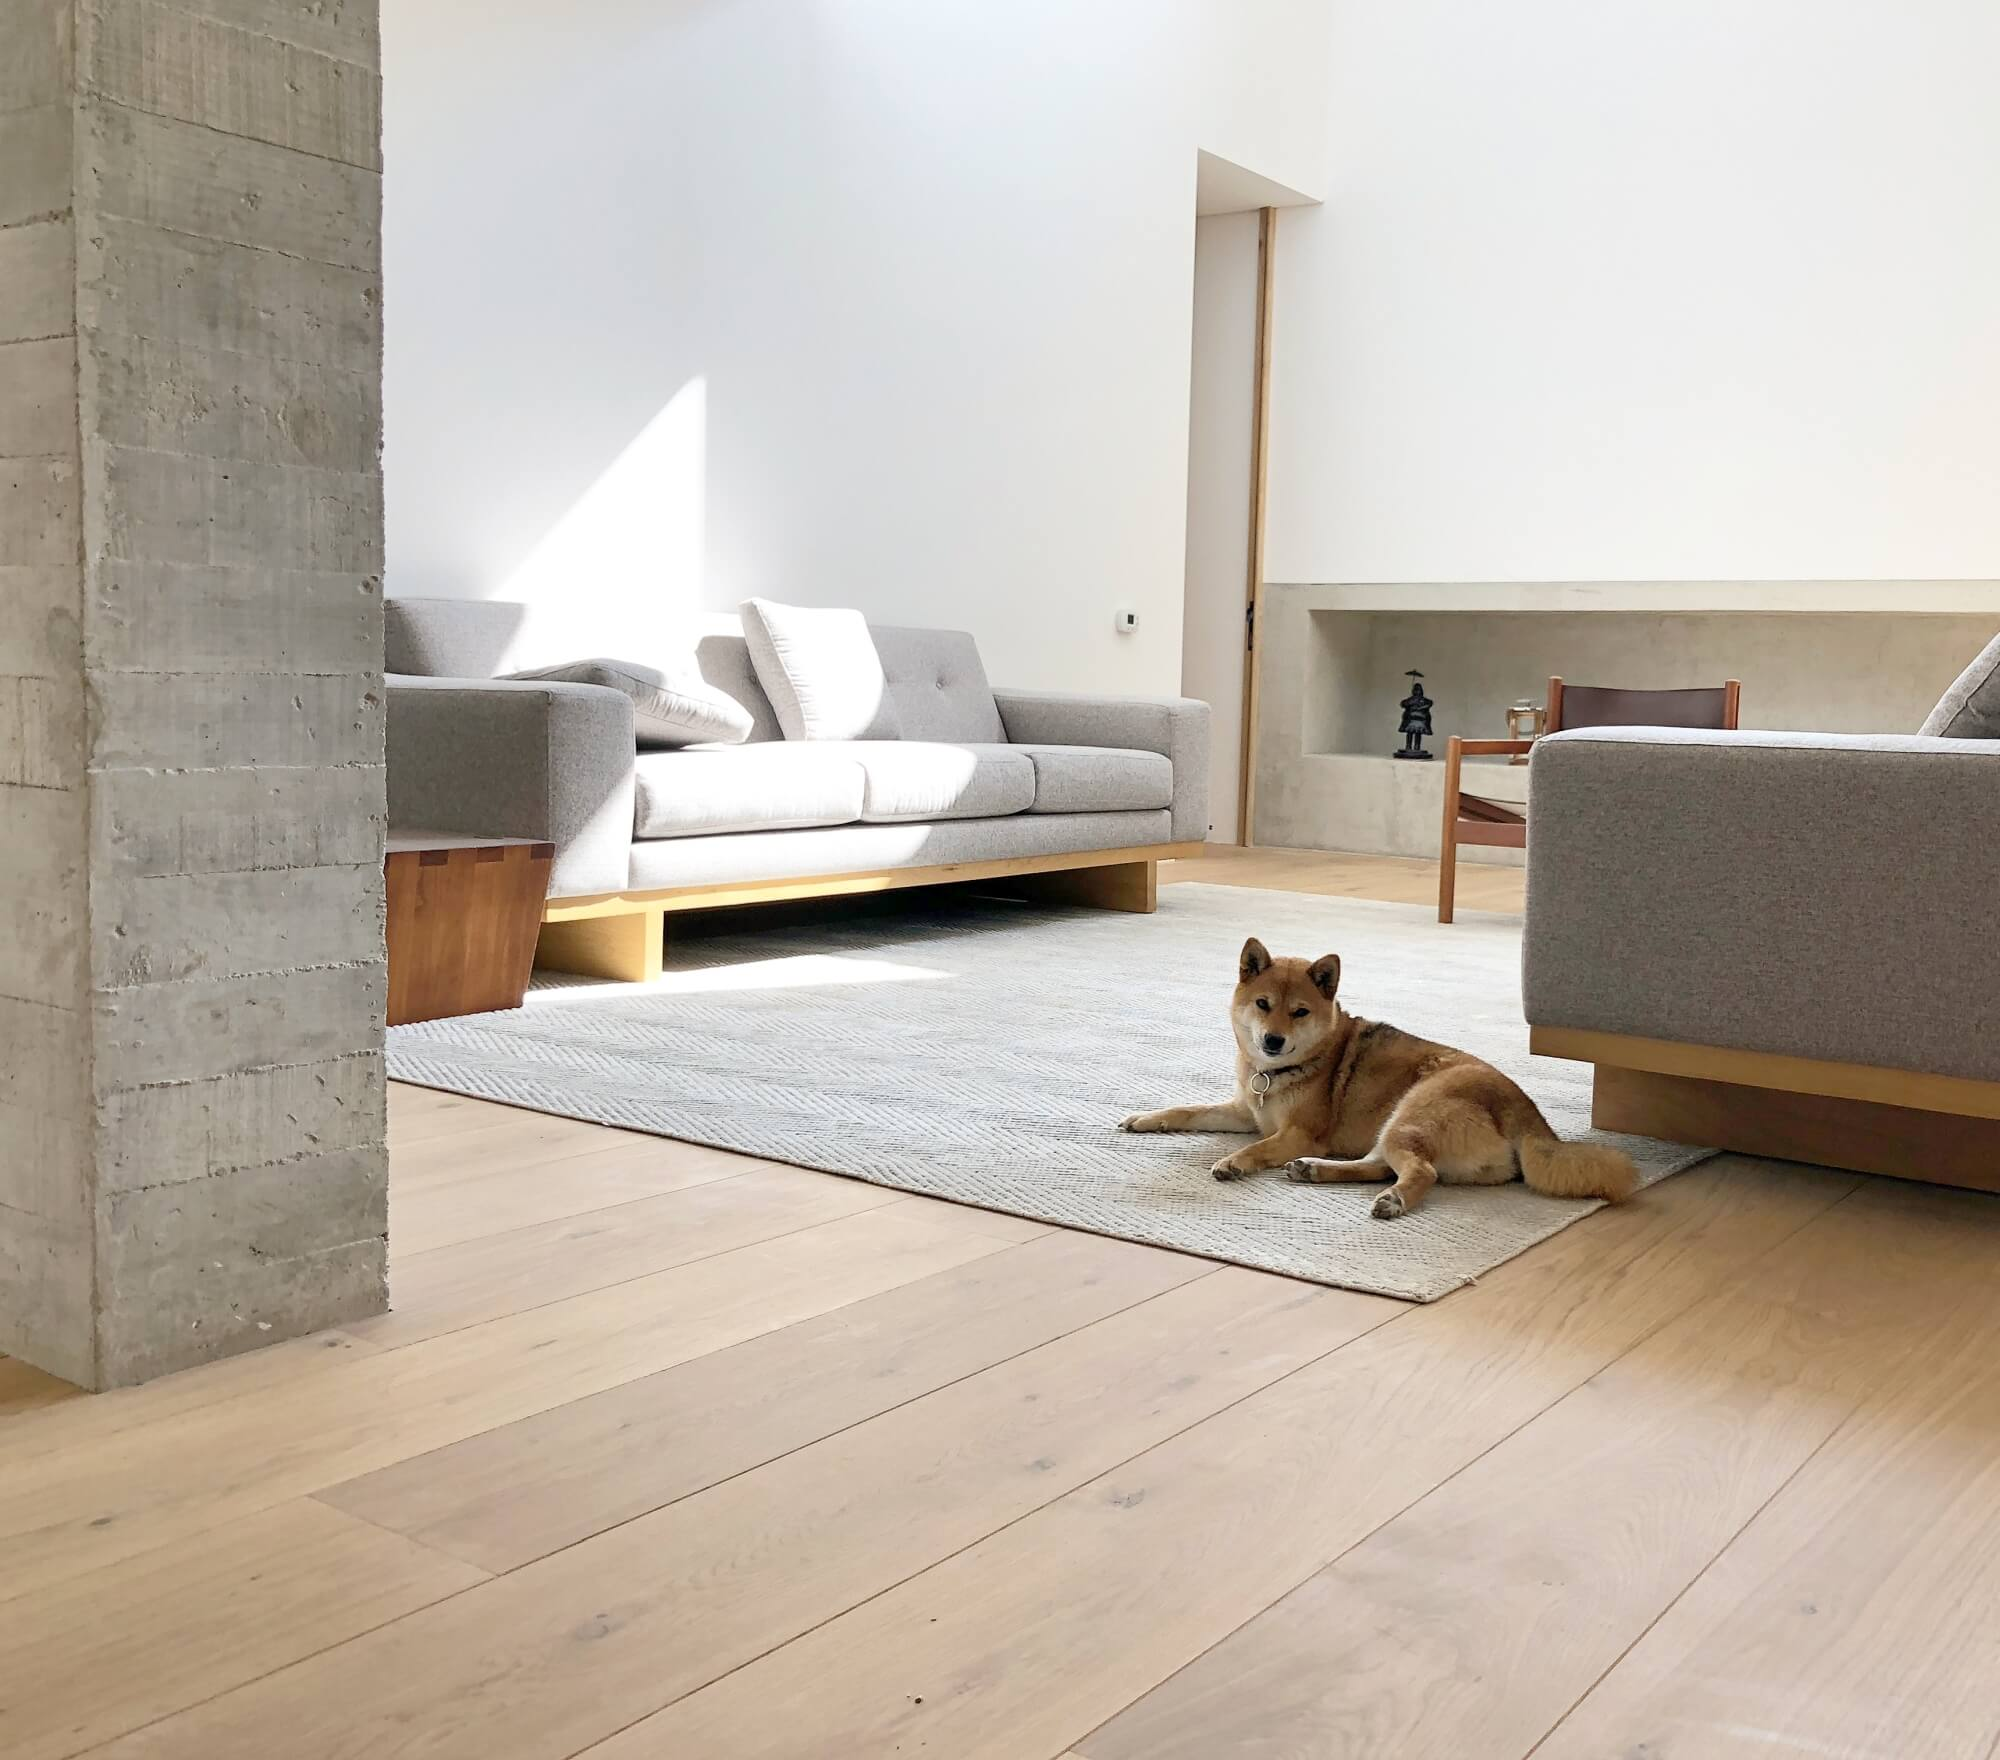 A dog laying on a rug in the middle of a living room with wide plank hardwood floors.